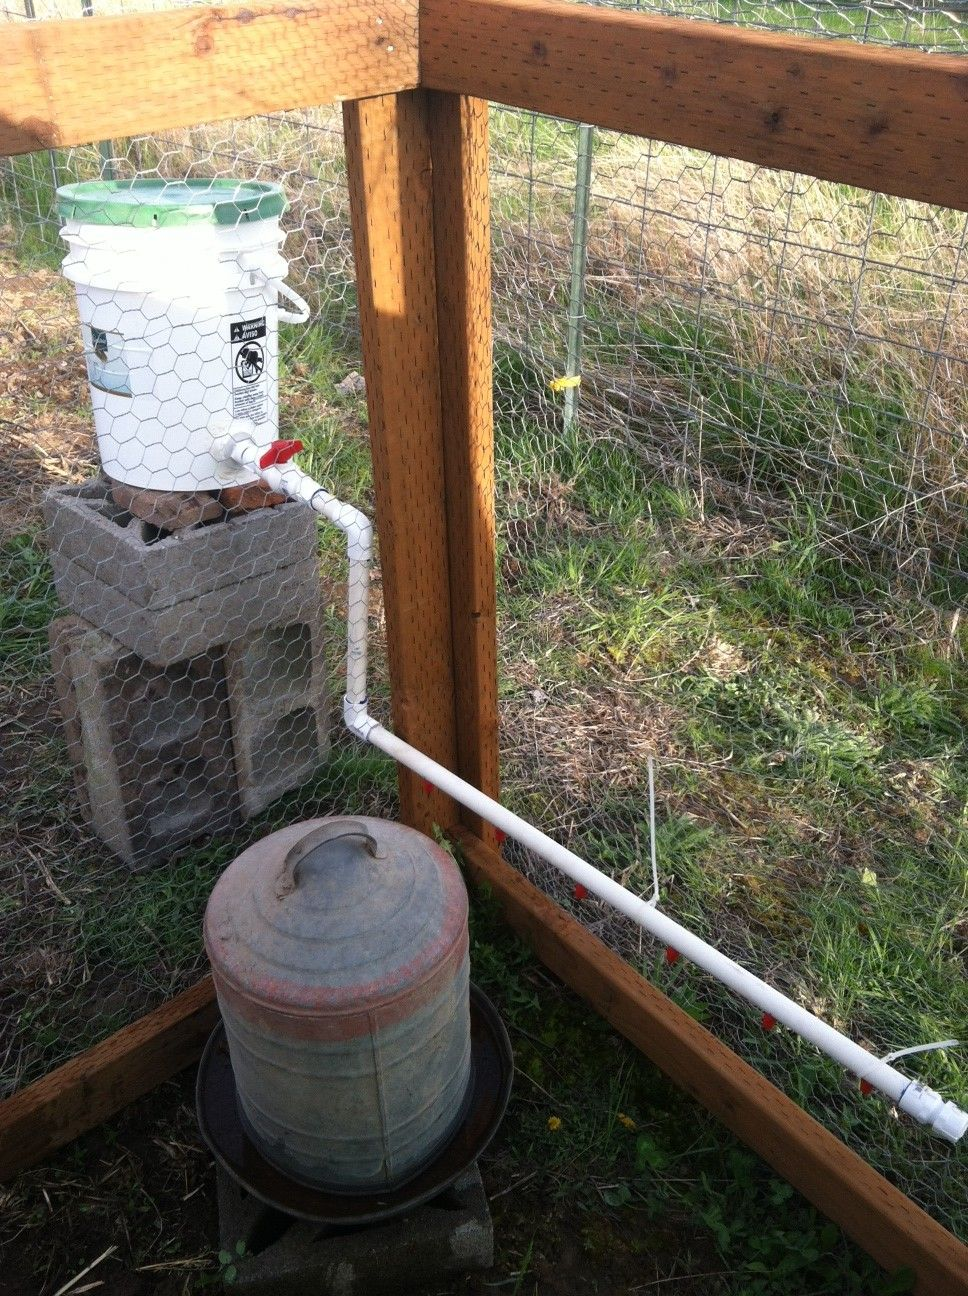 Thorough instructions on making pvc pipe or 5 gallon bucket watering systems for chickens!